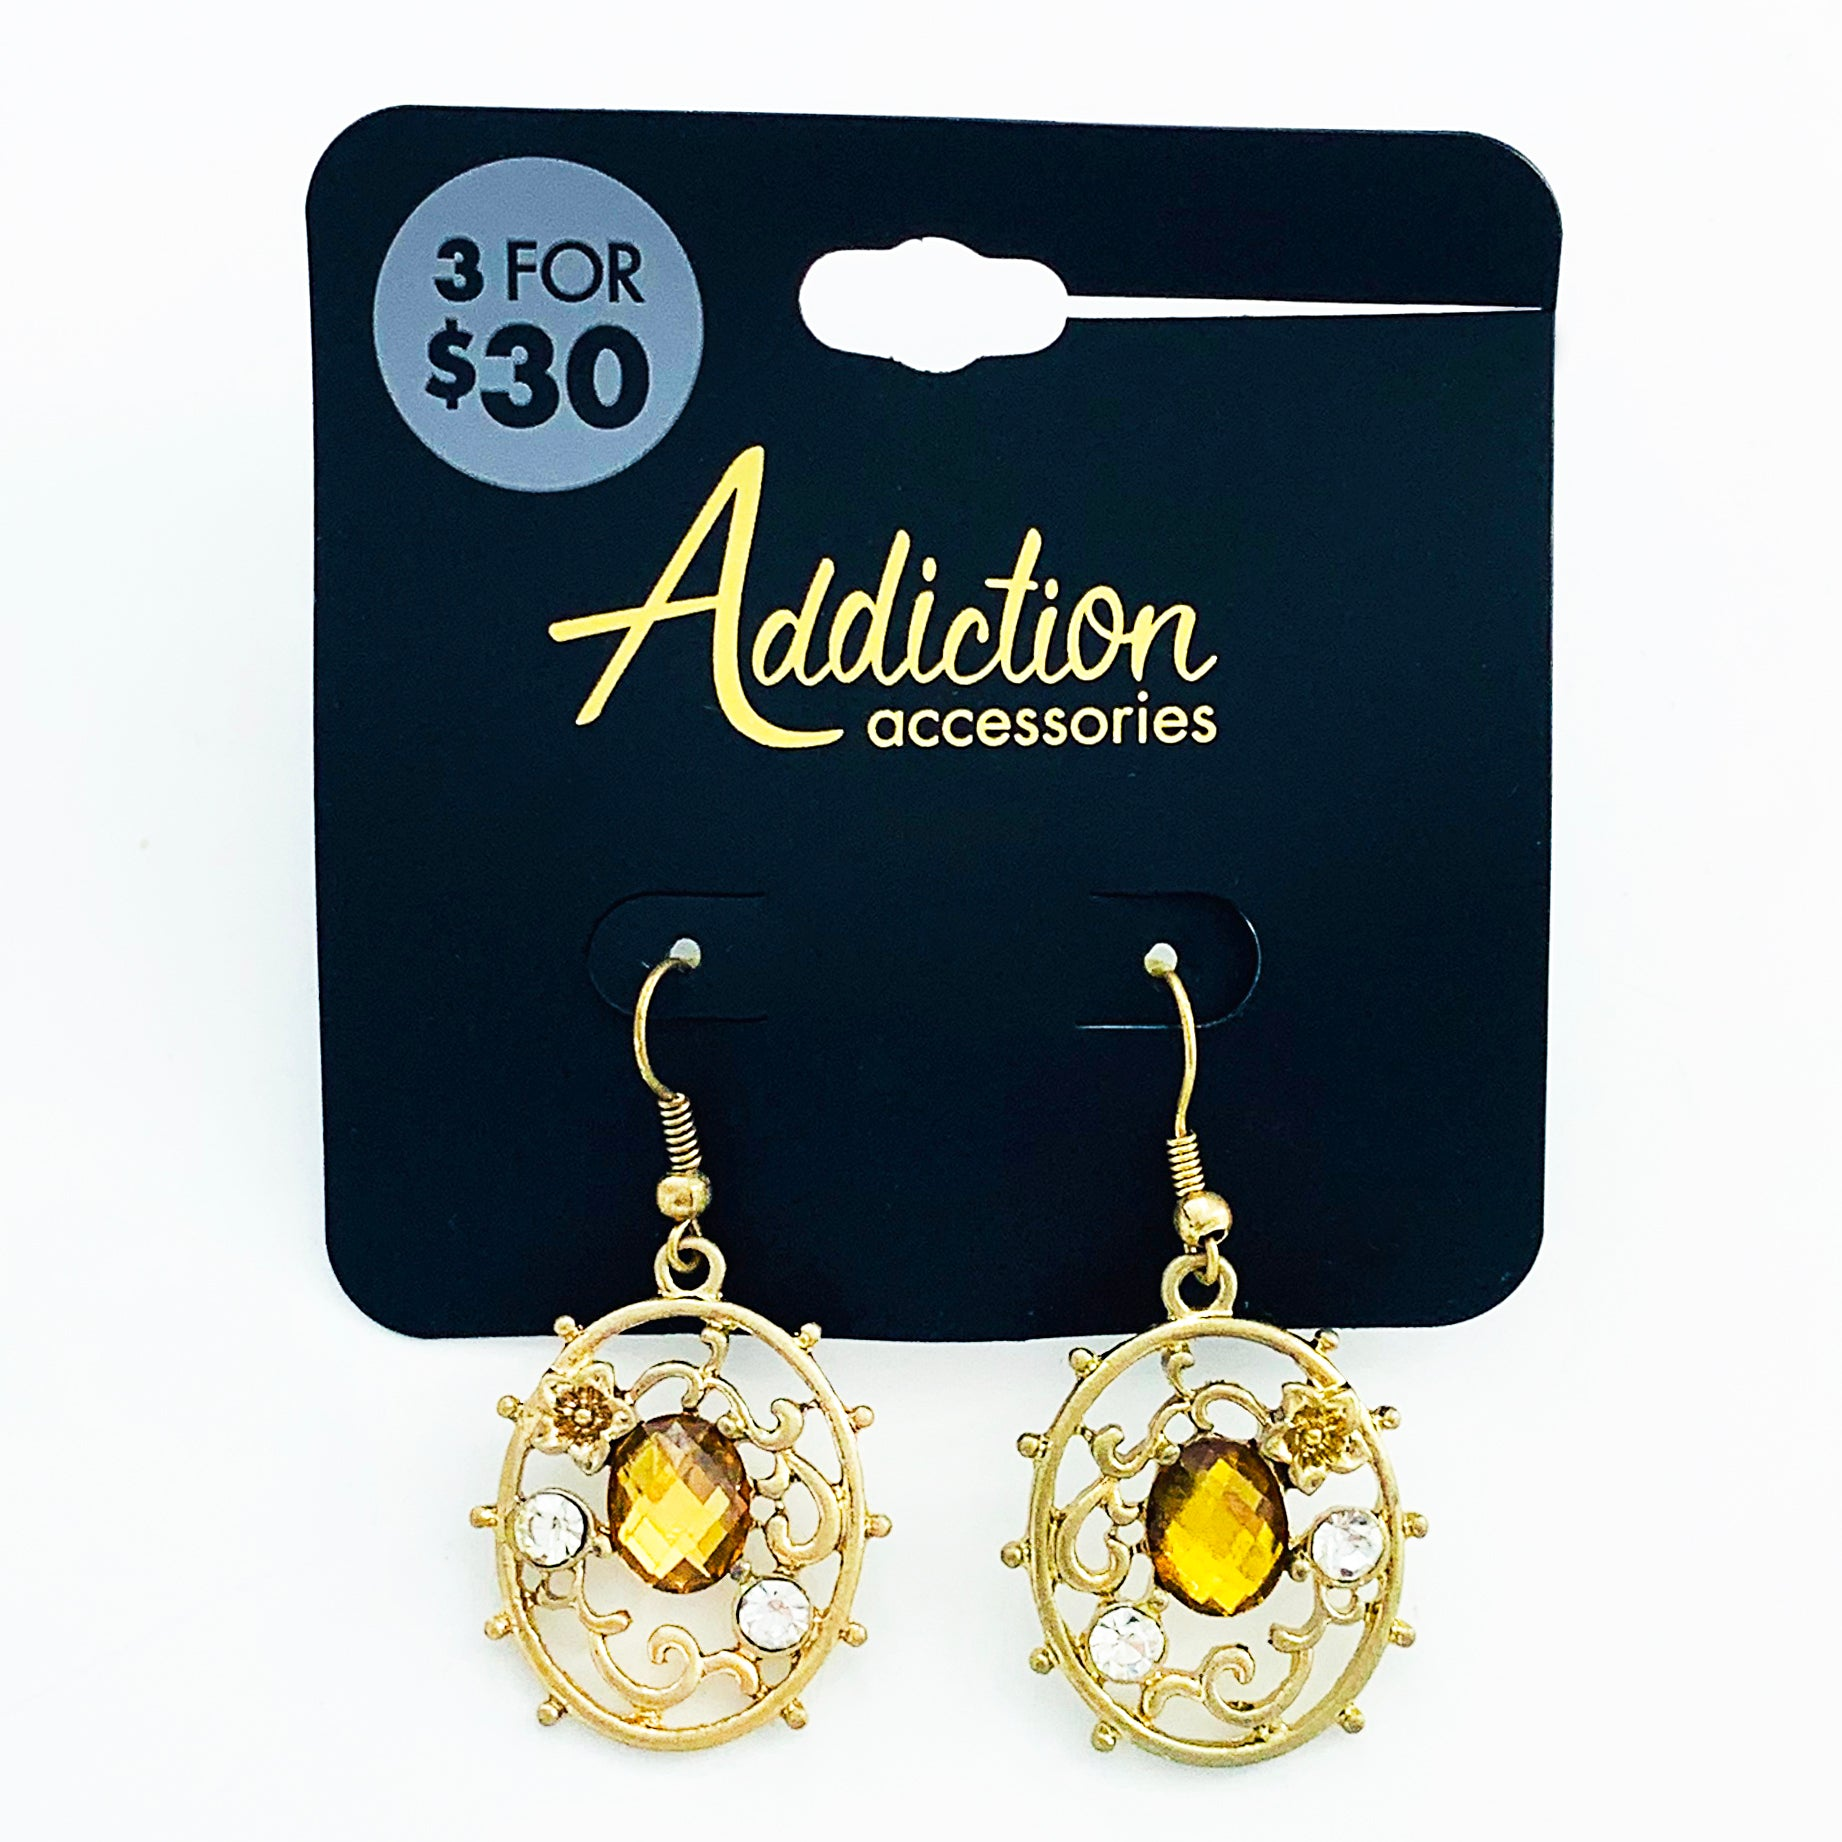 Ornate earrings with yellow facet gems